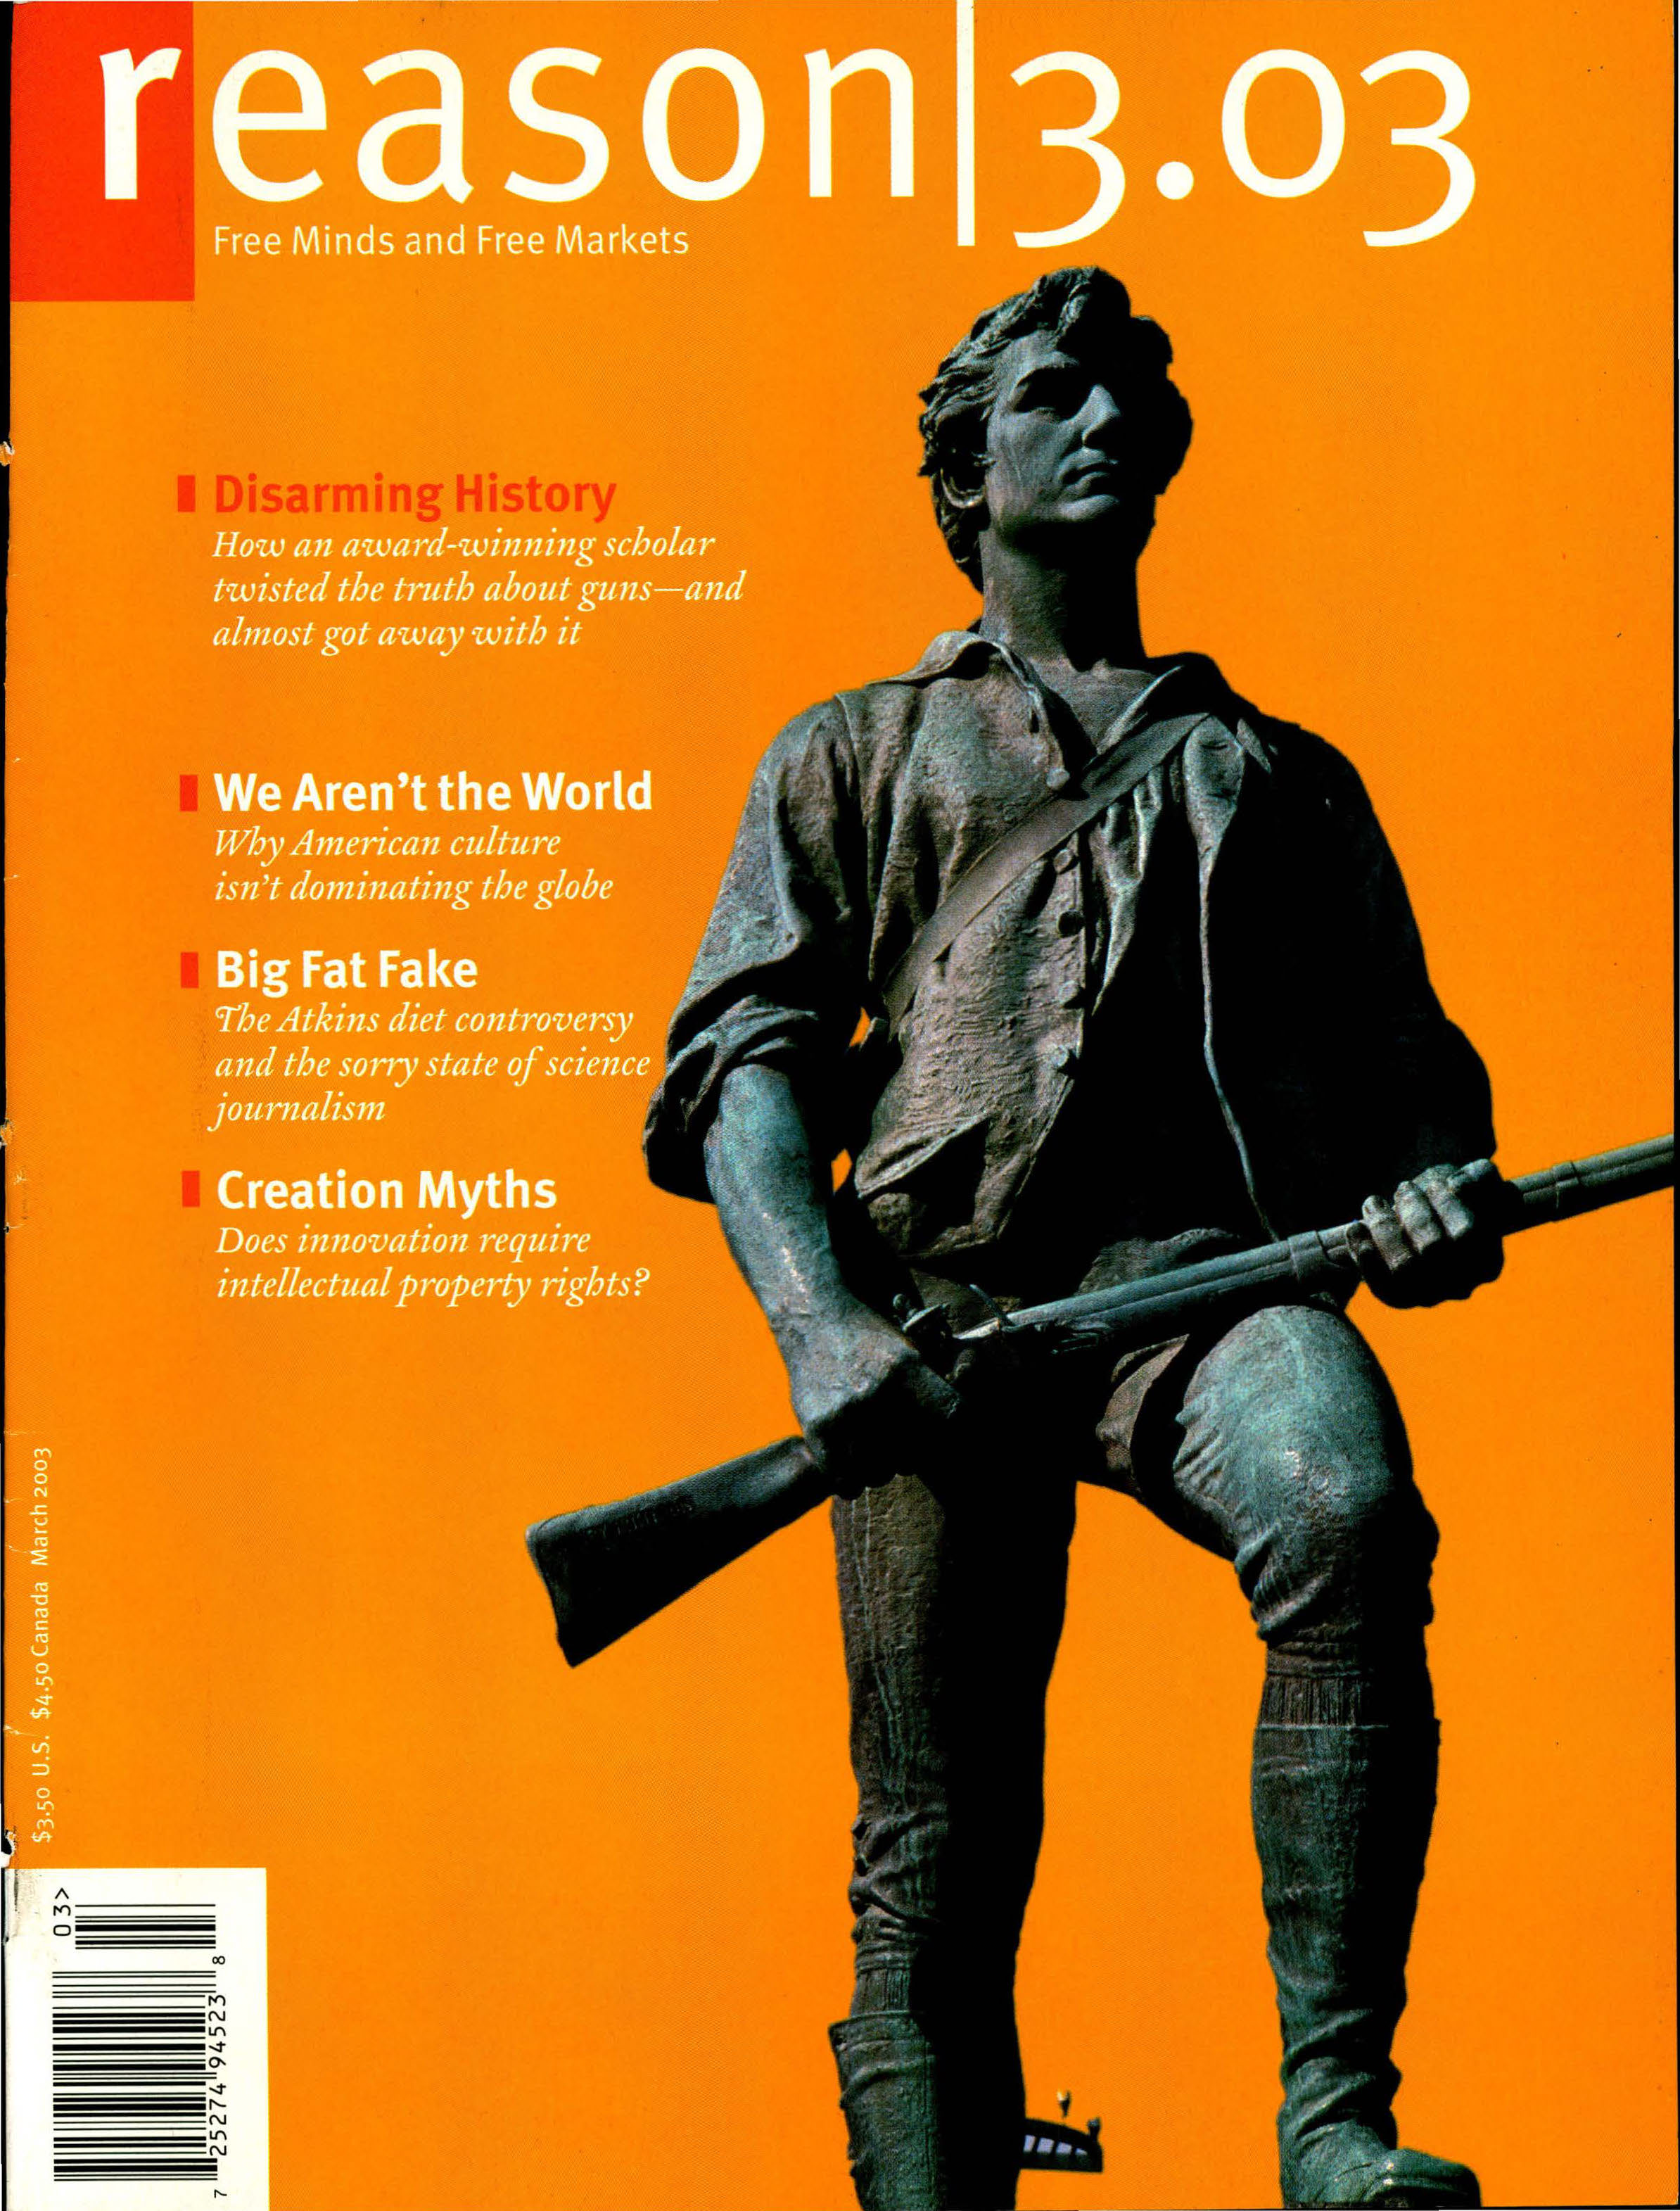 Reason Magazine, March 2003 cover image